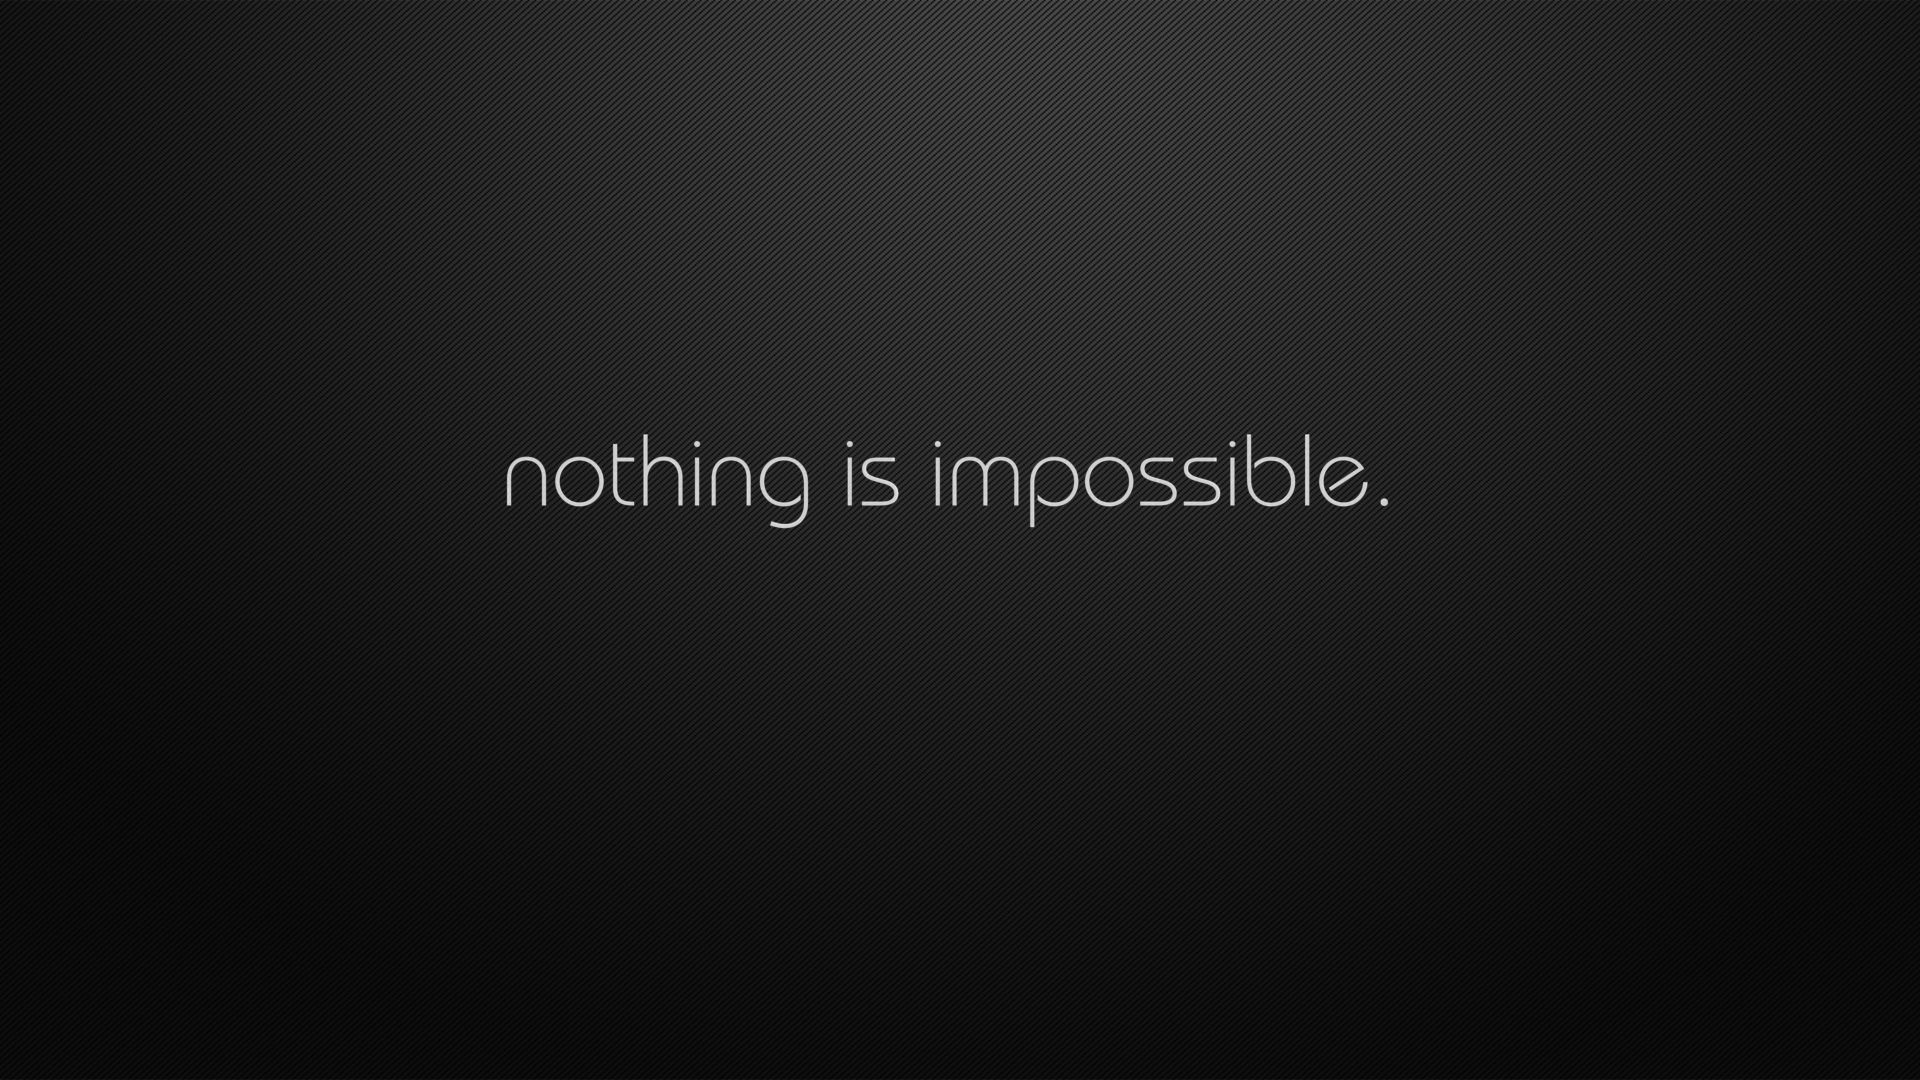 Nothing Is Impossible Wallpapers Top Free Nothing Is Impossible Backgrounds Wallpaperaccess